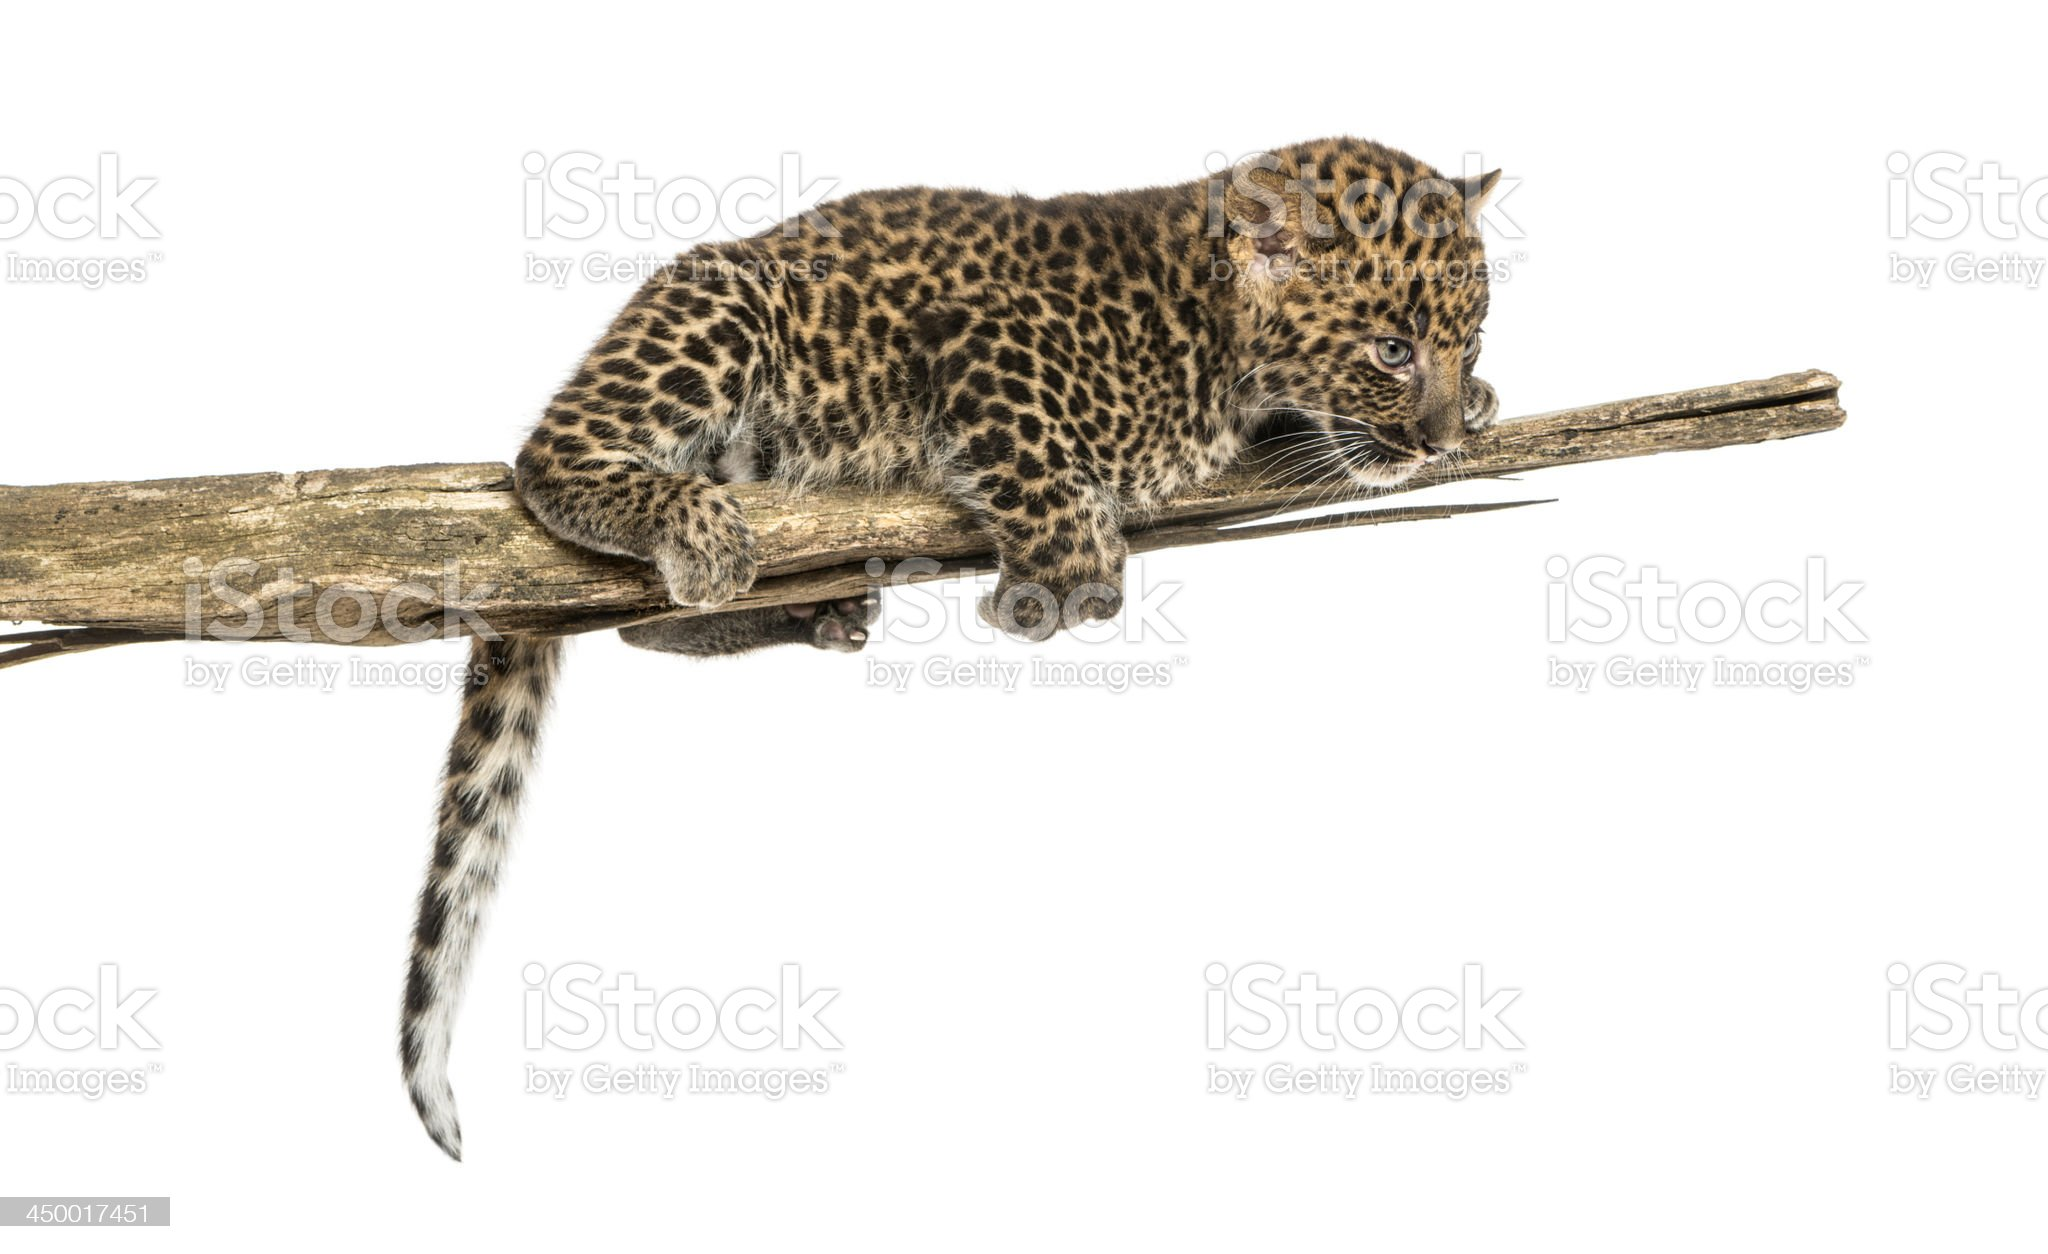 Spotted Leopard cub on a branch looking down, isolated royalty-free stock photo